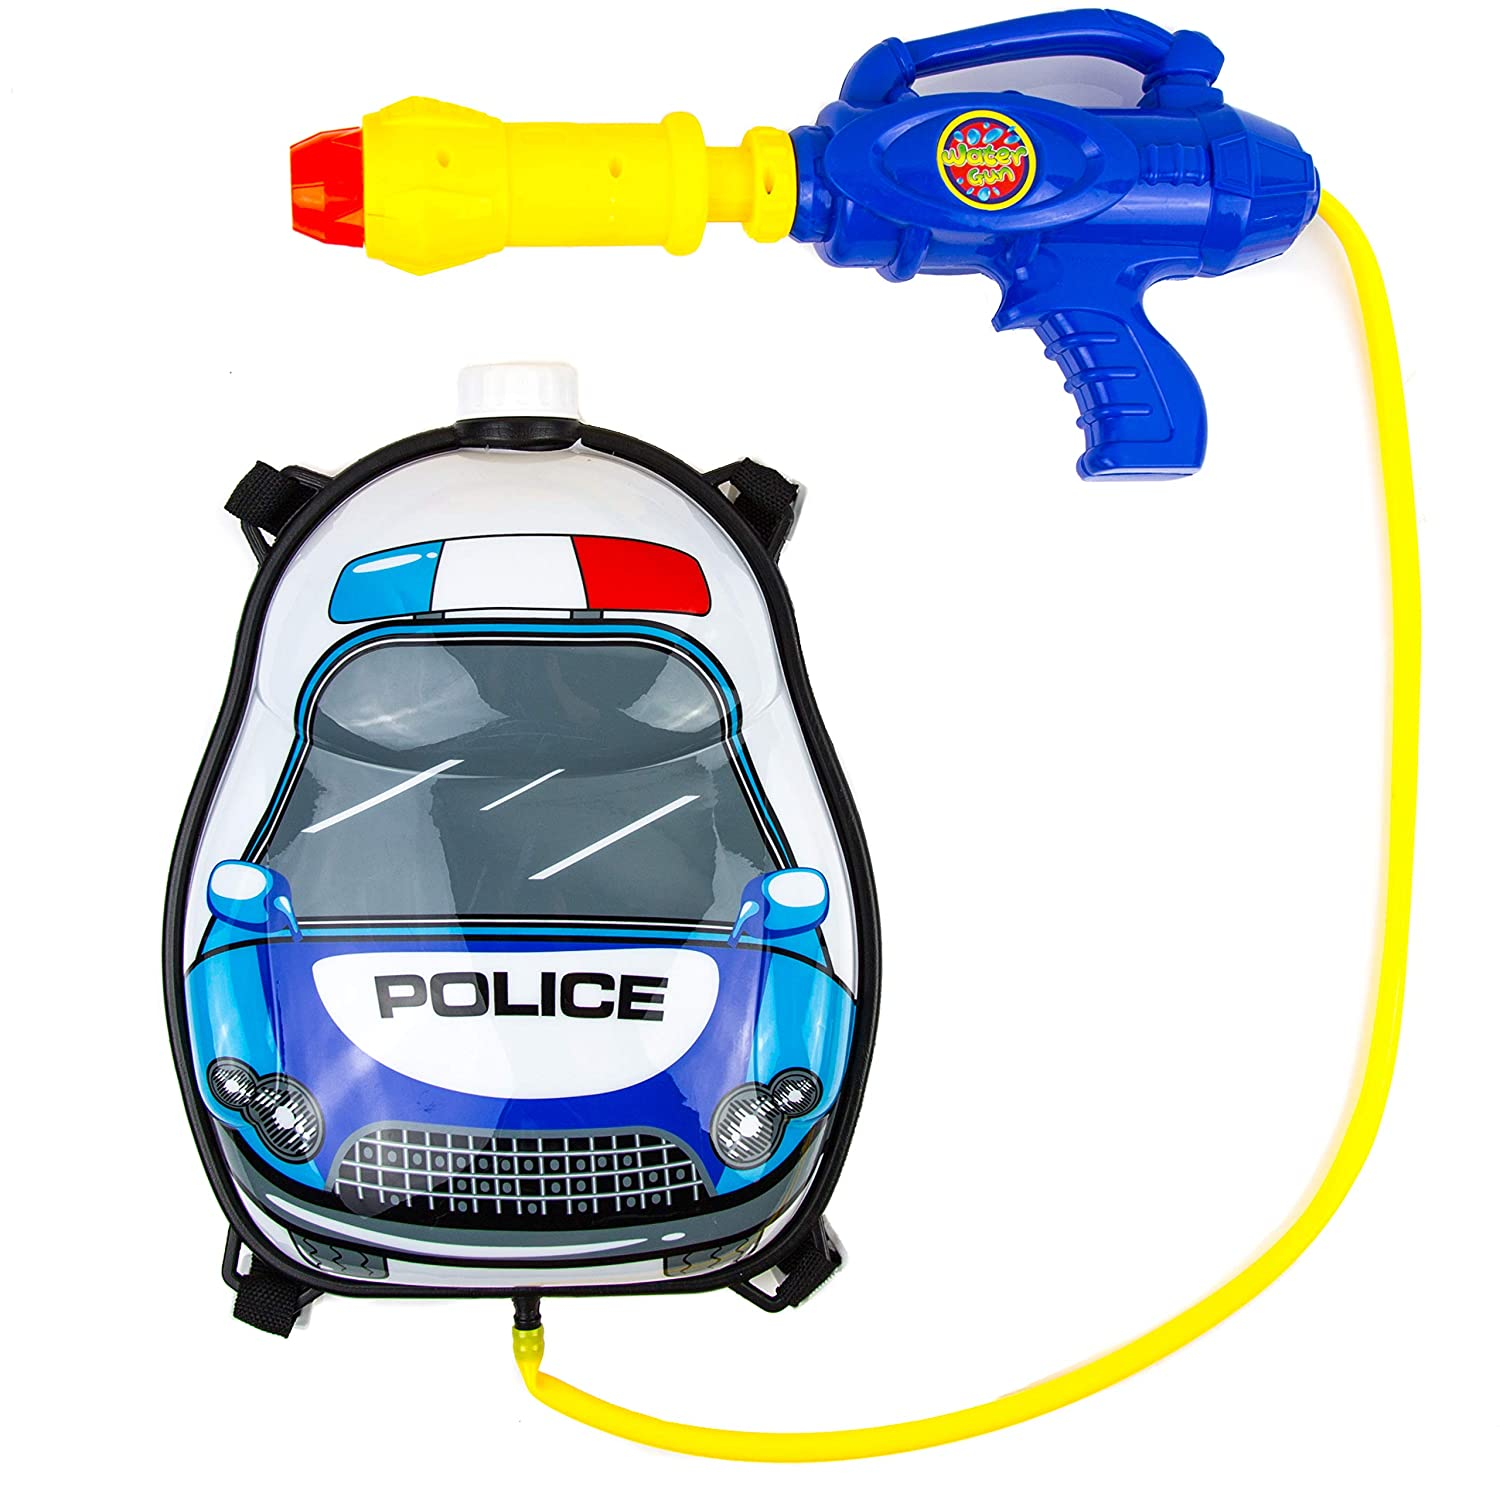 Toysery Police Truck Backpack Watergun Endless Fun for Kids Simple to Operate Recommended for Kids Age 3+ Safe and Durable Best Gift for Kids